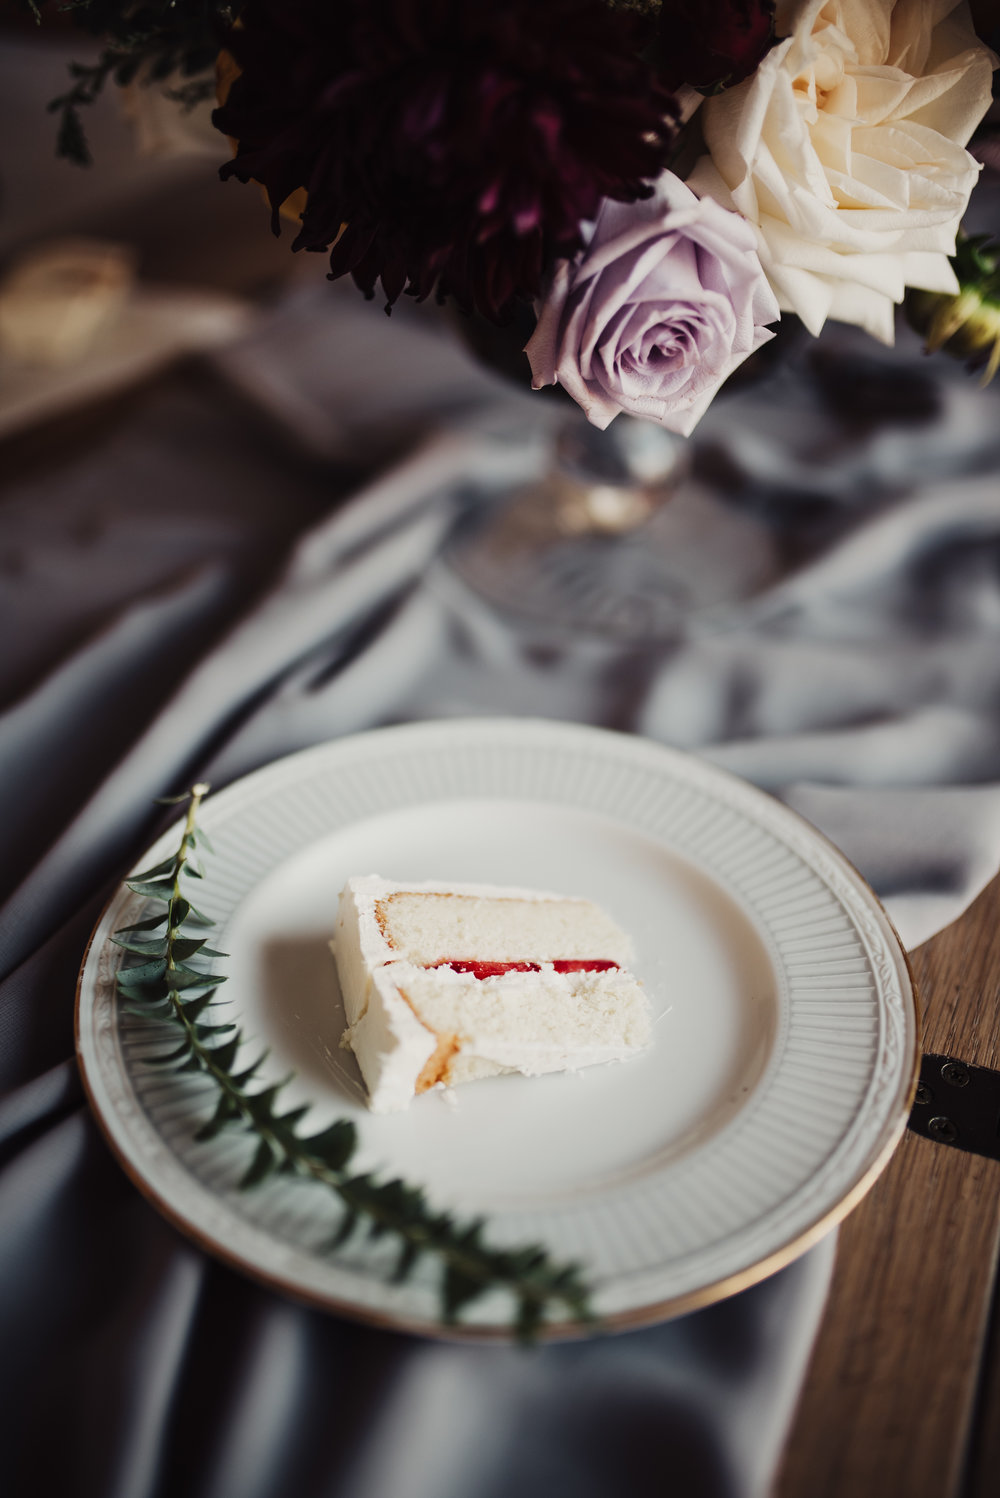 bright-cake-artistry-wedding-cake-slice.jpg